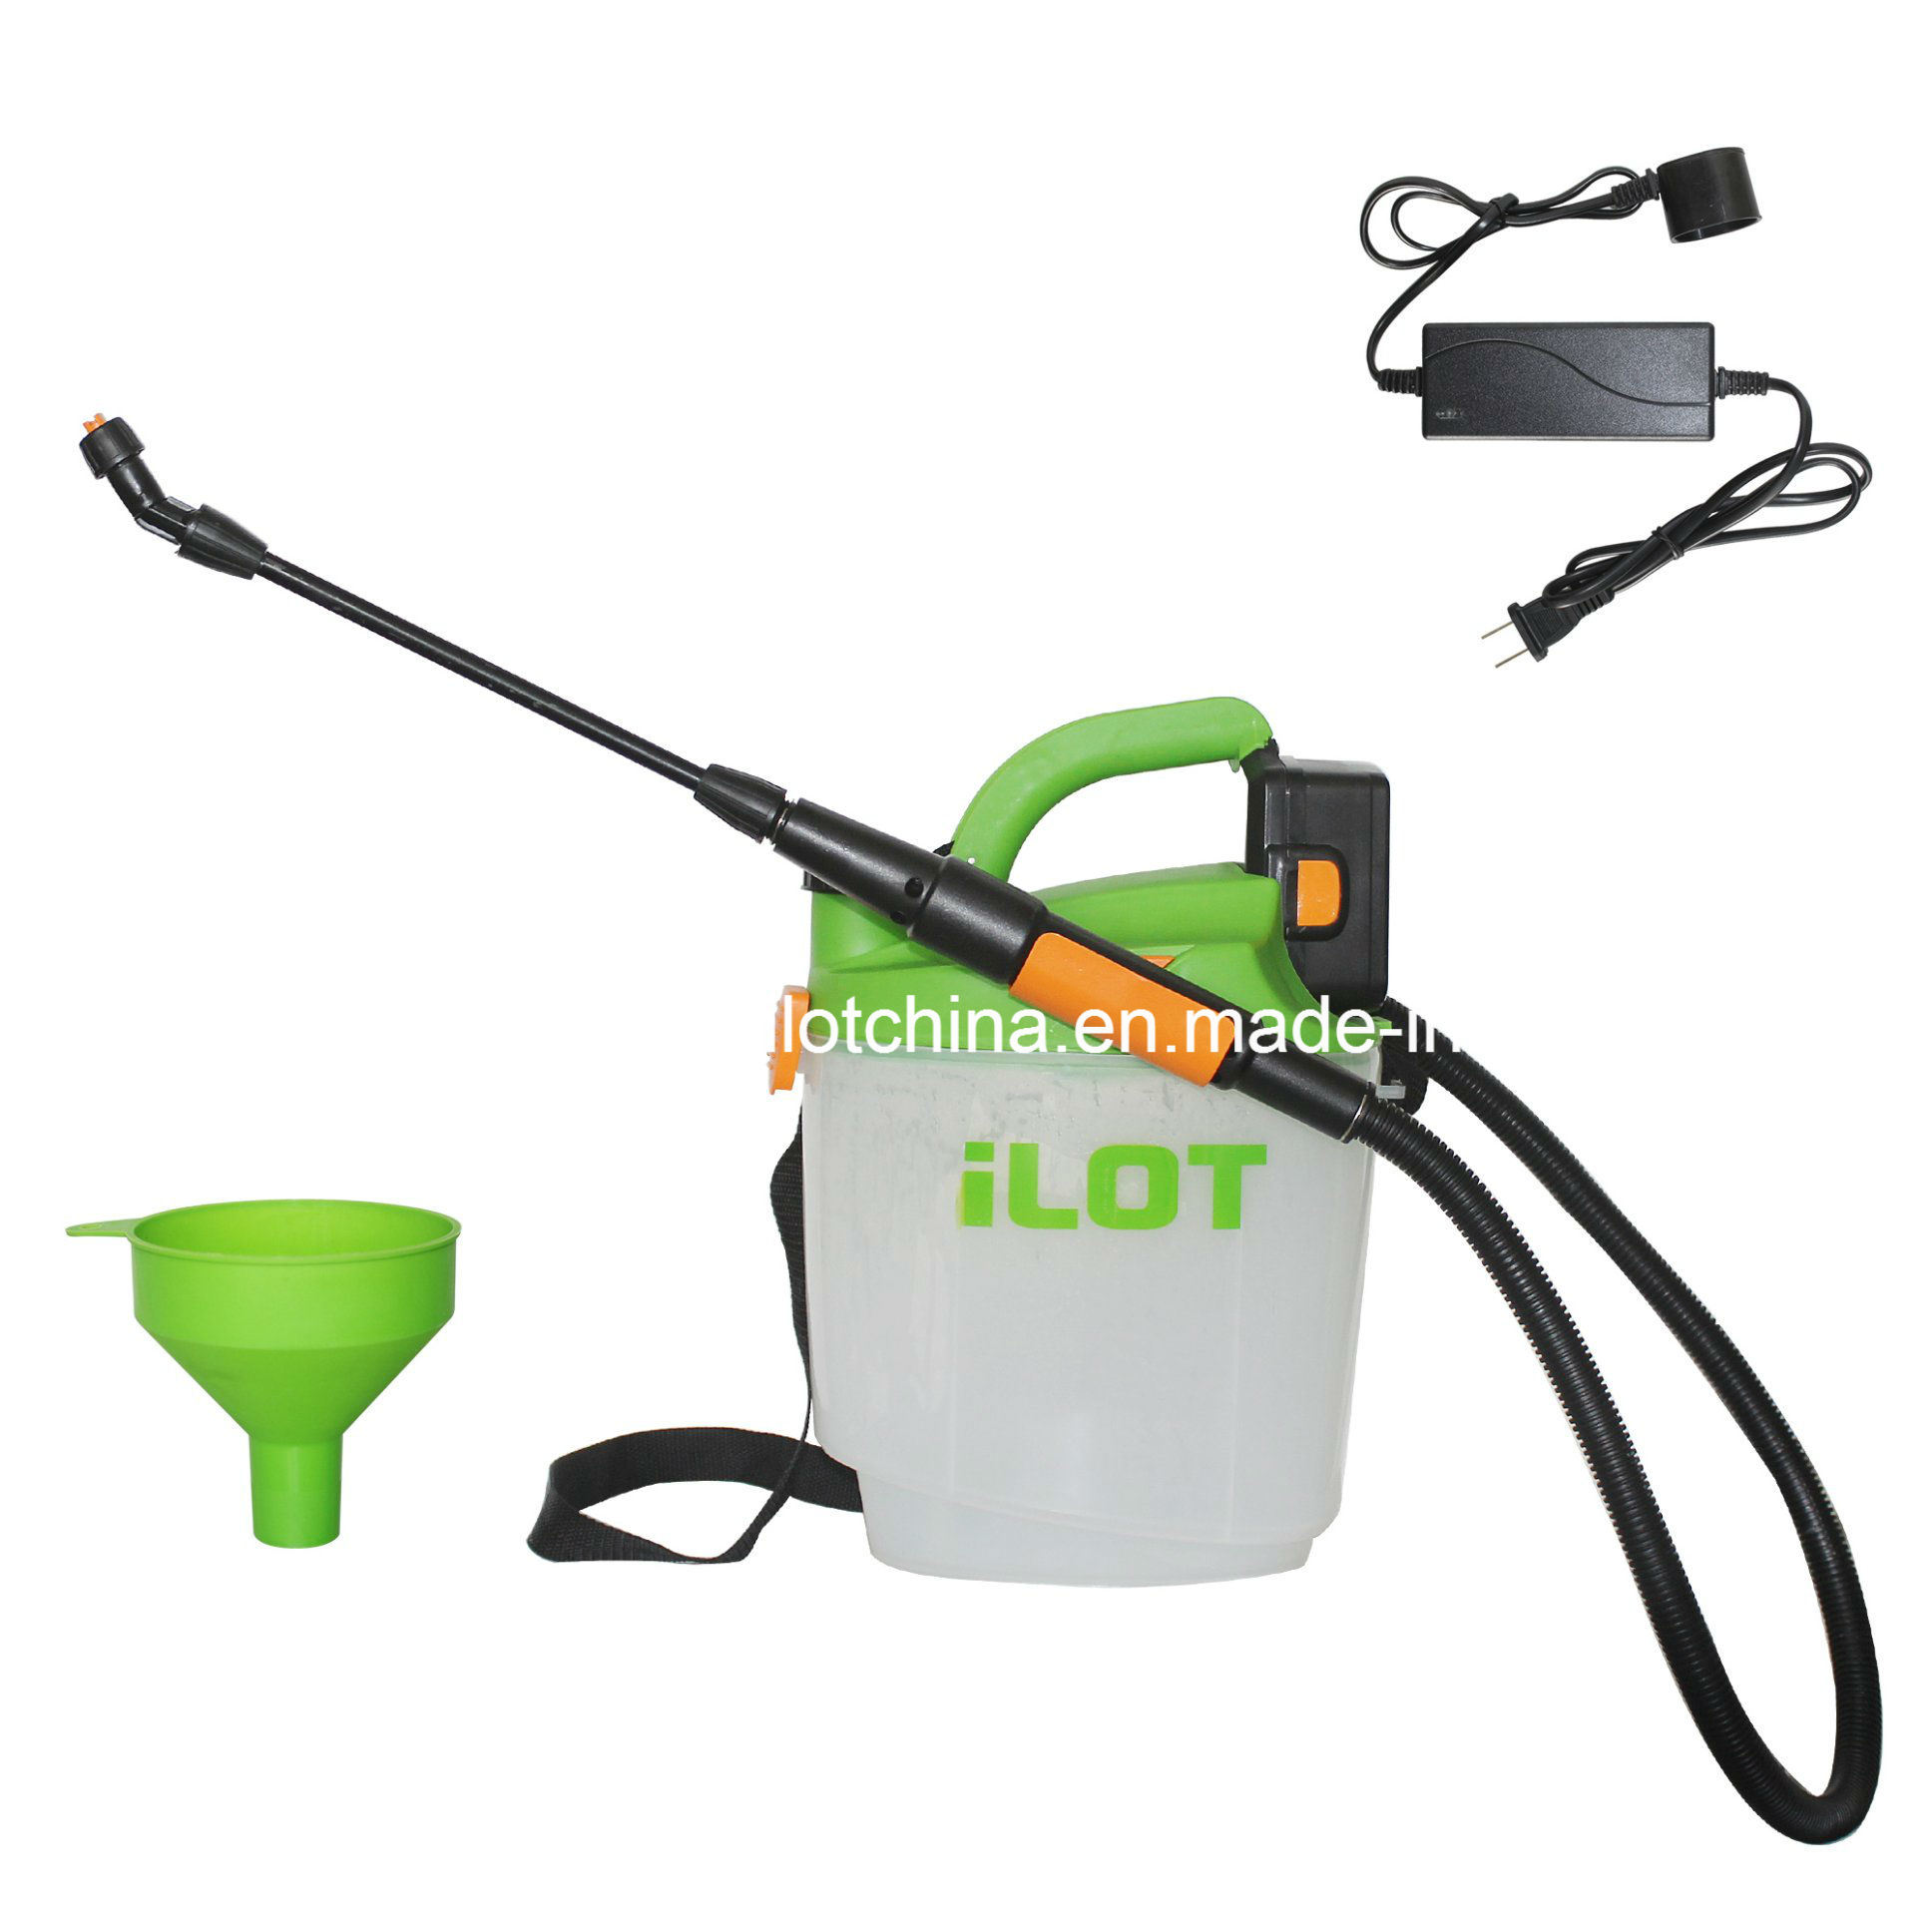 Ilot Airless Paint Sprayer with Detachable Lead-Acid Battery for Fence Painting etc.